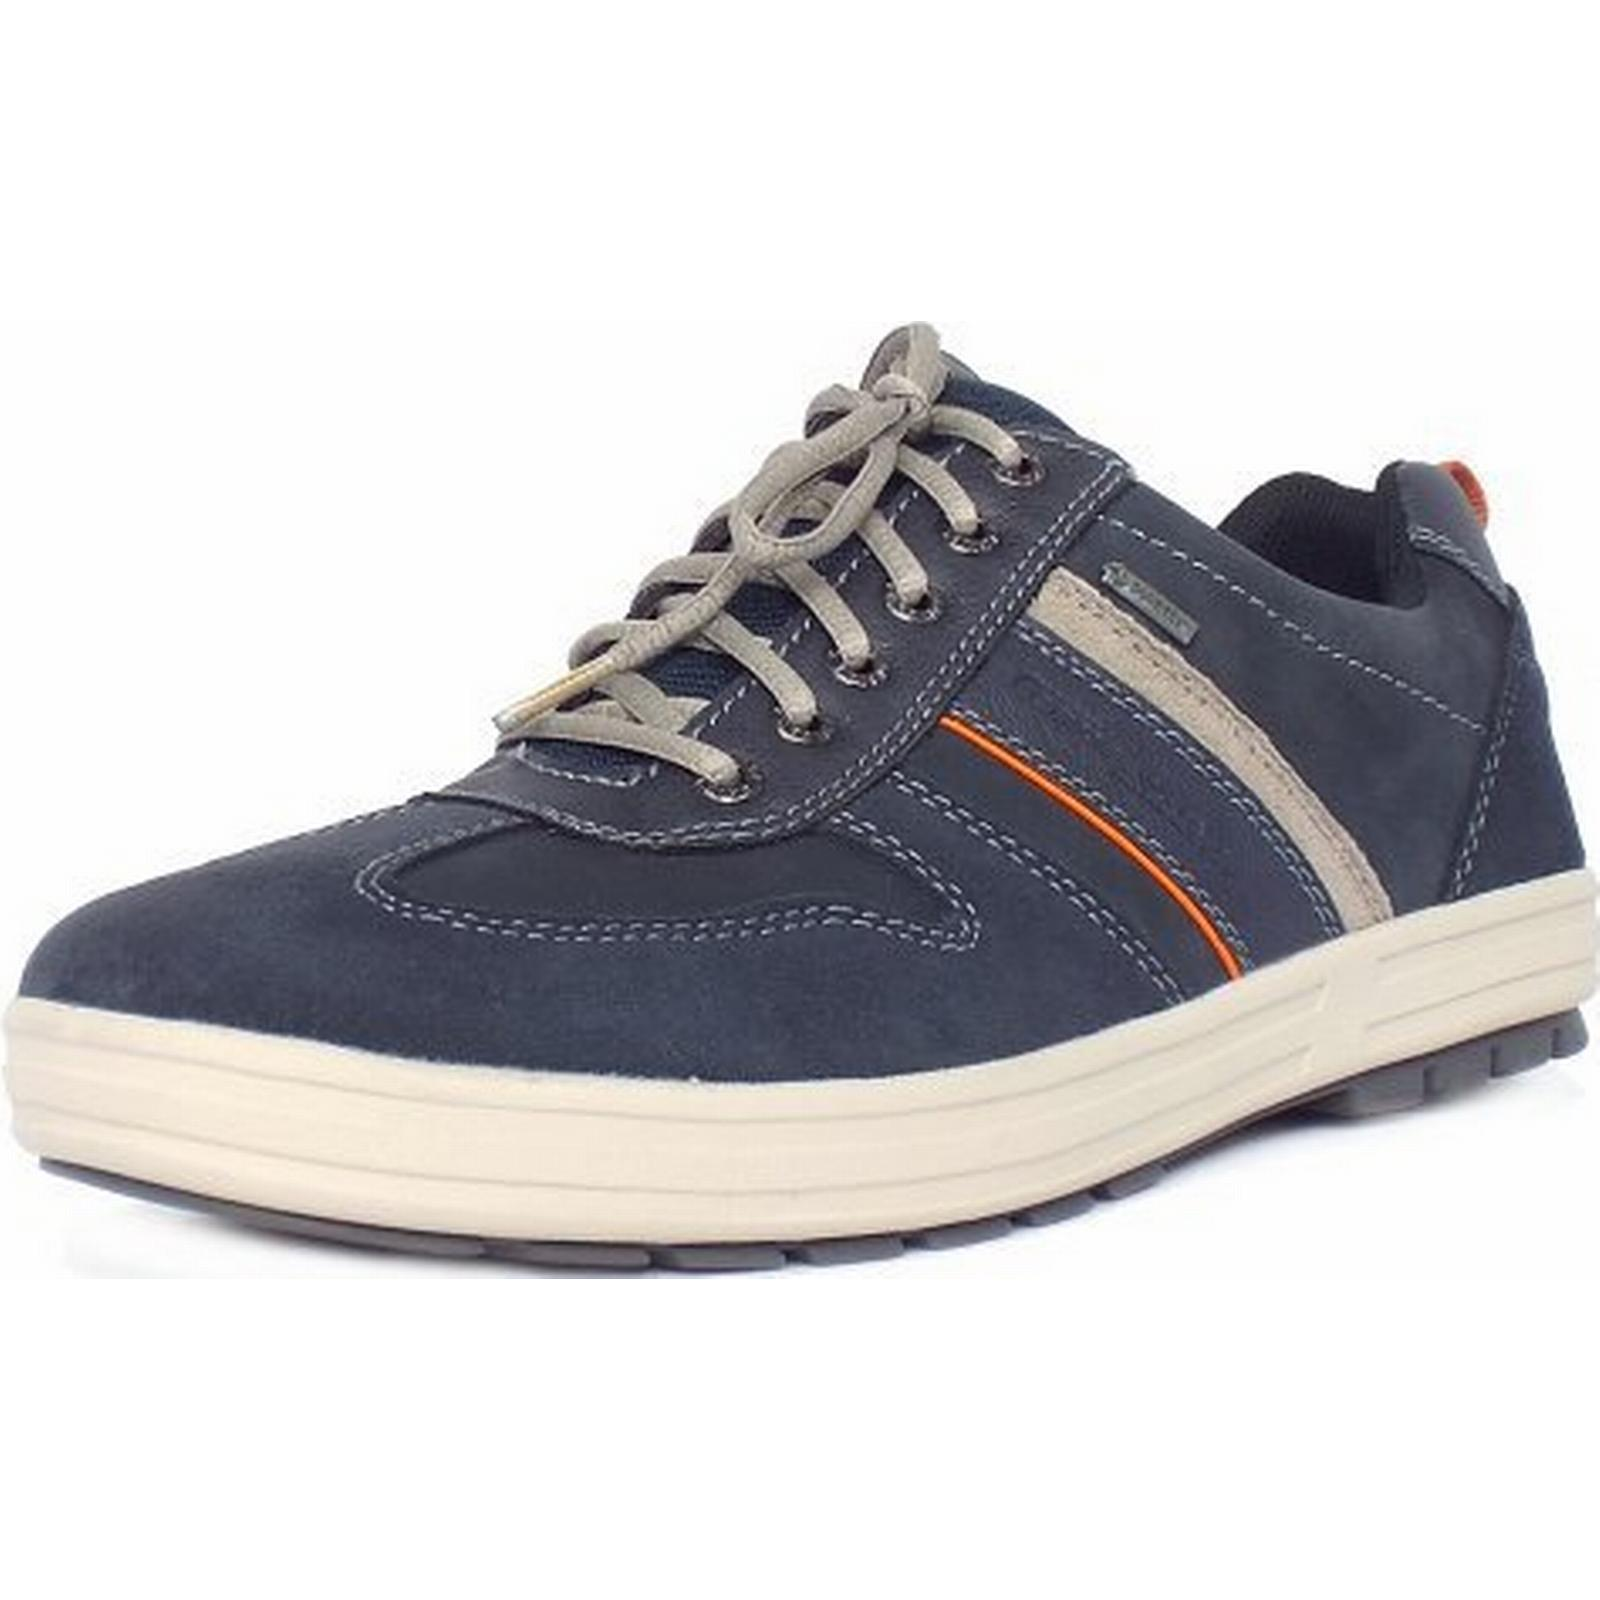 Camel Active KNOCKOUT CAMEL ACTIVE MENS SHOES Size: Size: SHOES 8, Colour: NAVY 5b9cd1